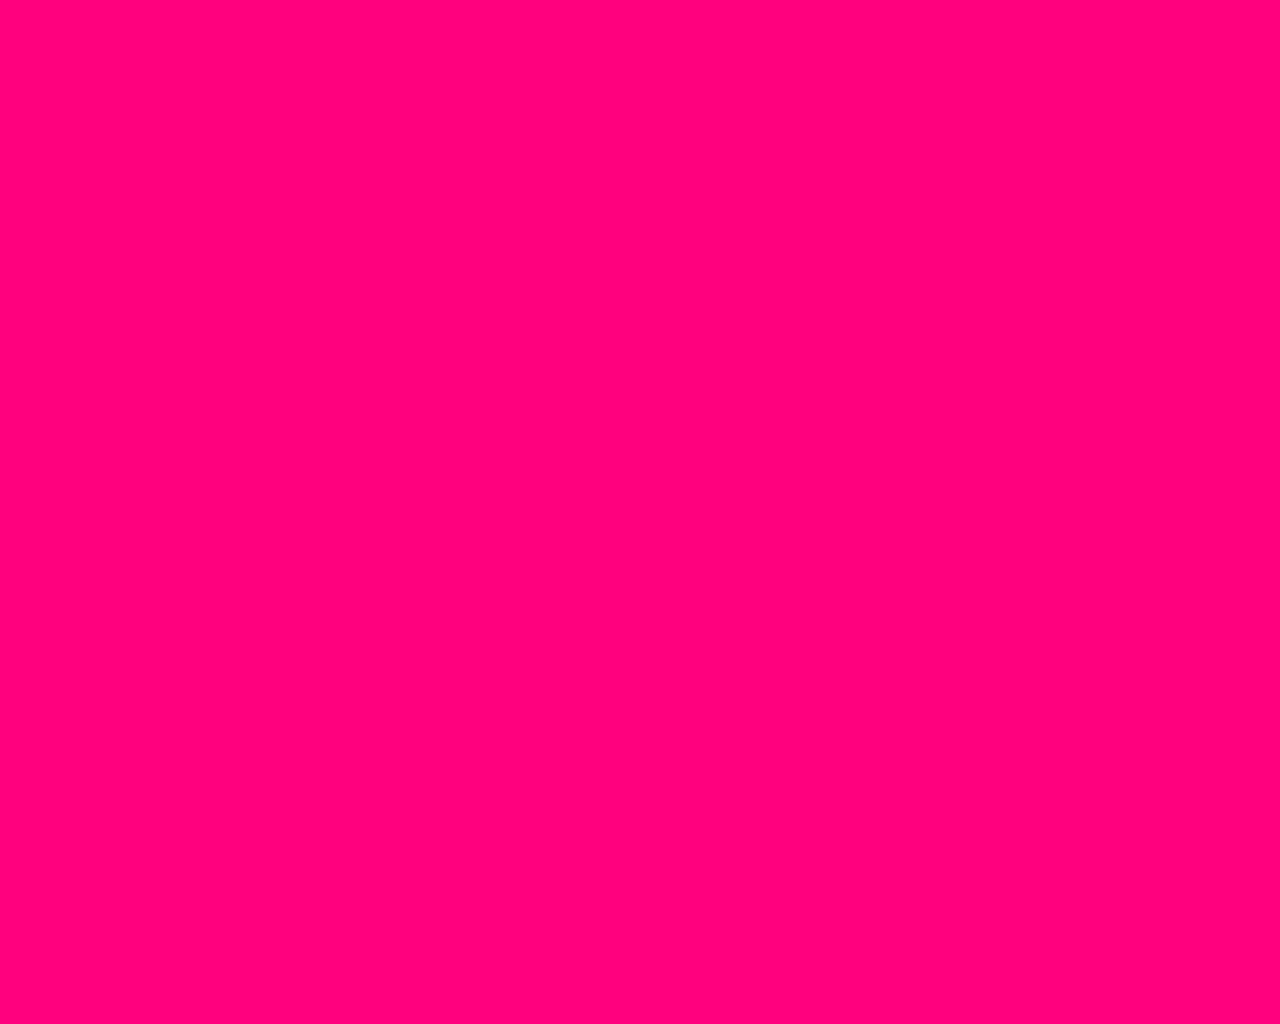 1280x1024 Bright Pink Solid Color Background